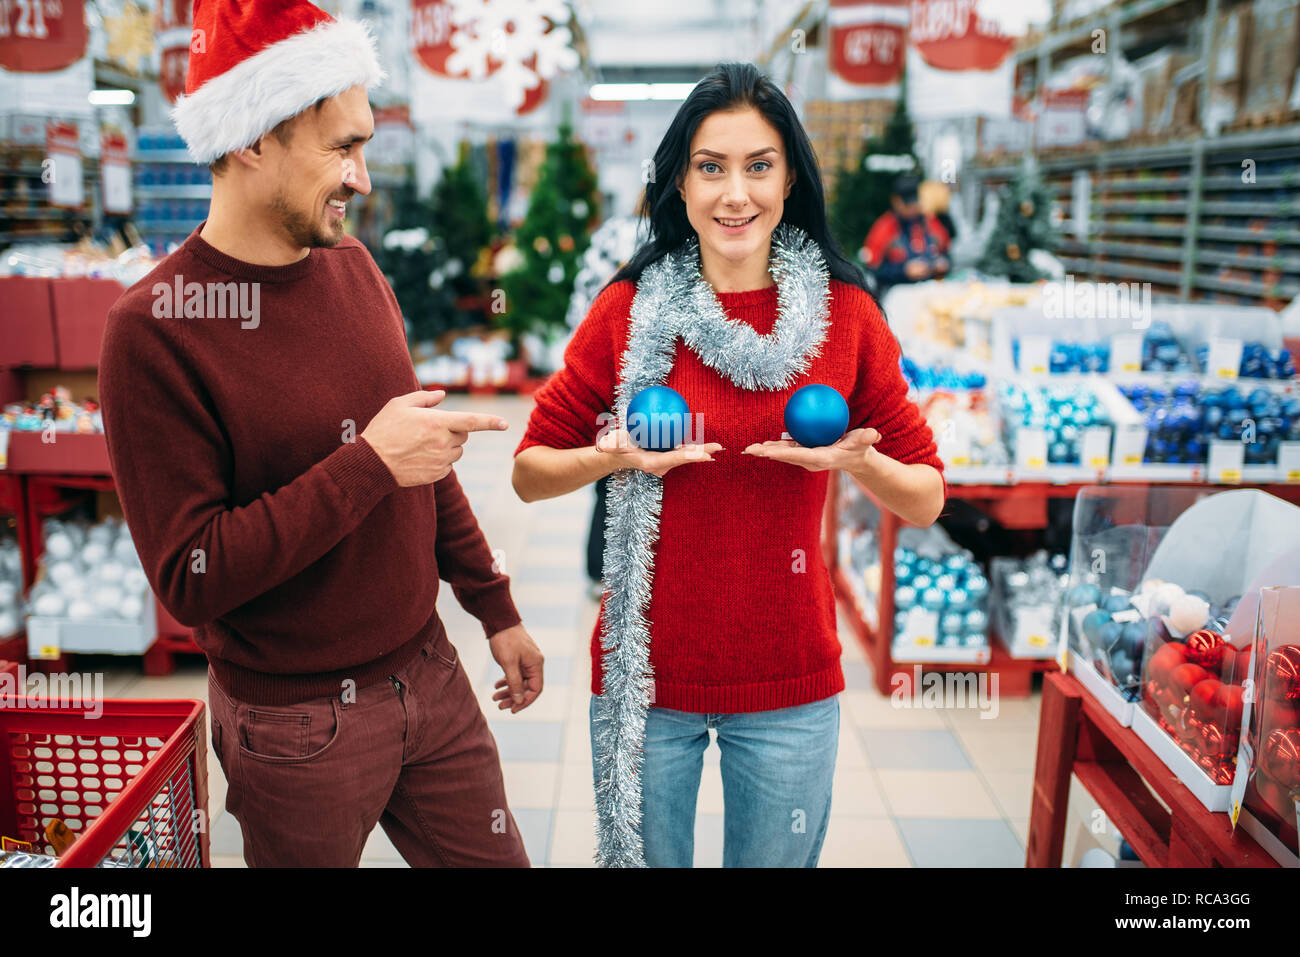 Funny couple chooses decorations in shop and jokes, woman puts christmas balls to her chest. December shopping of holiday goods - Stock Image